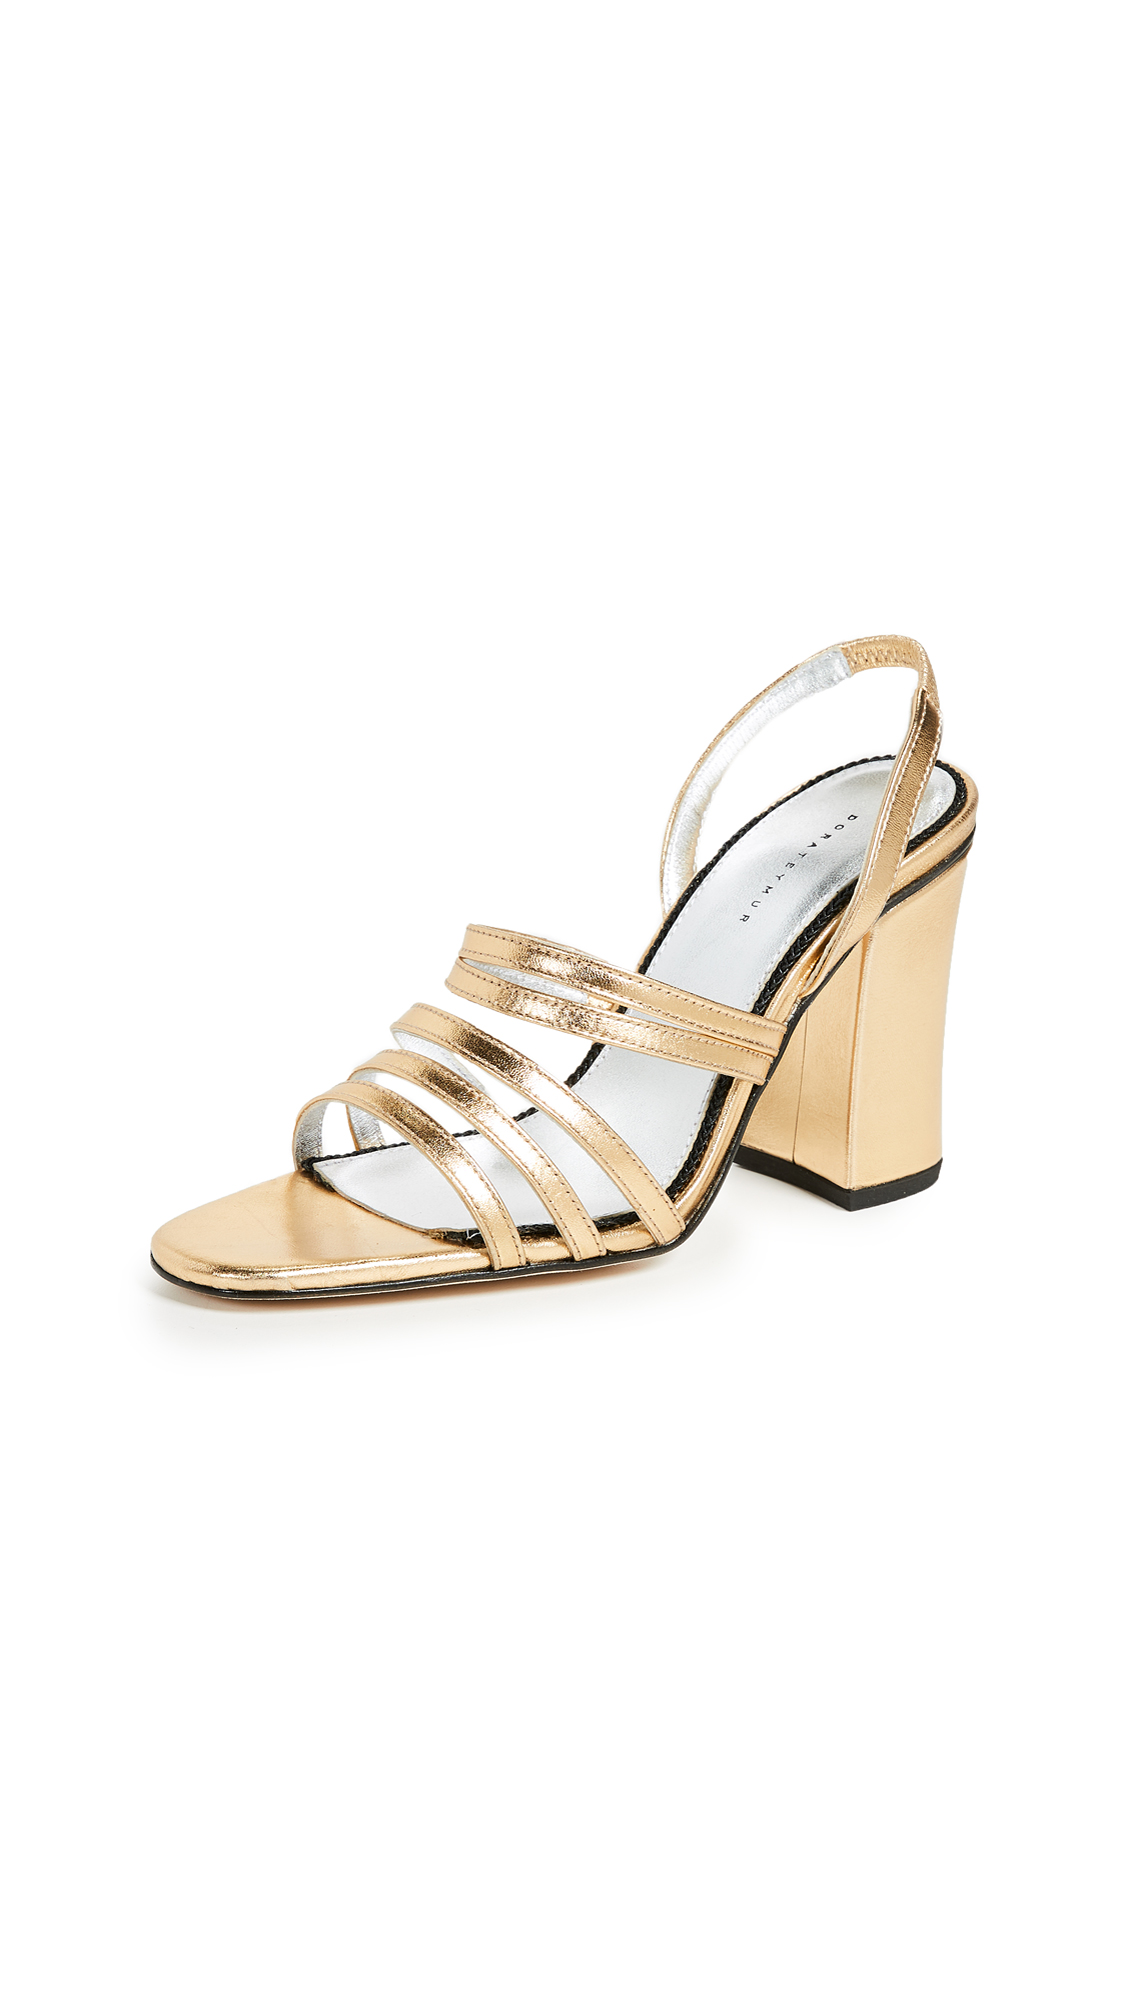 Dorateymur Integra Sandals - Gold